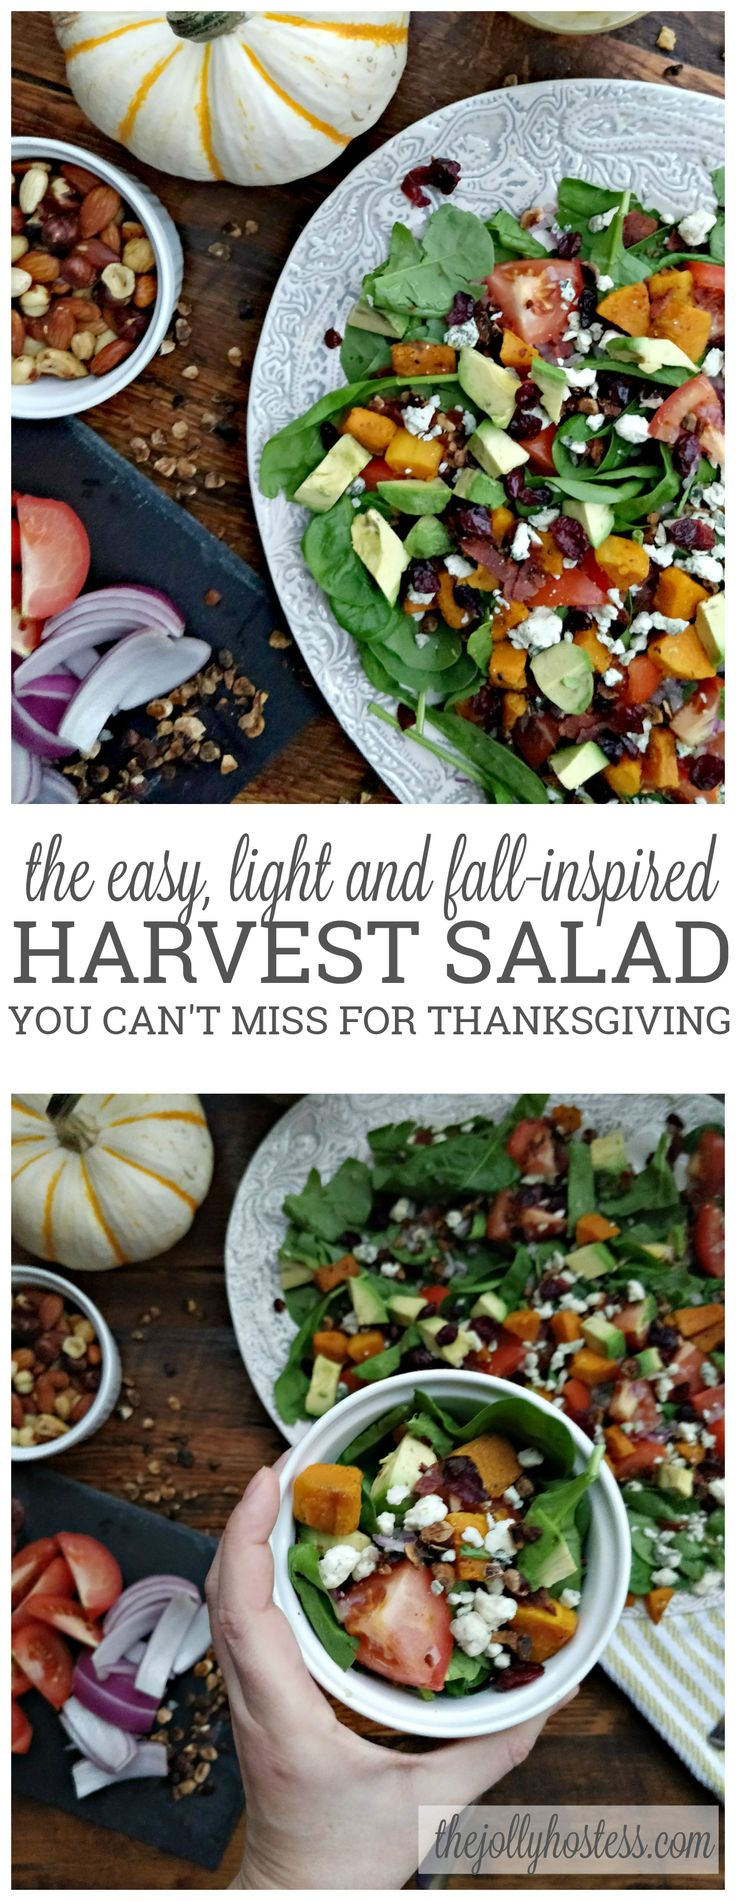 Harvest Salad | easy recipes | fall | winter | holidays | autumn | thanksgiving | sides | butternut squash | turkey bacon | dressing | healthy food | gluten free | quick recipes | roasted